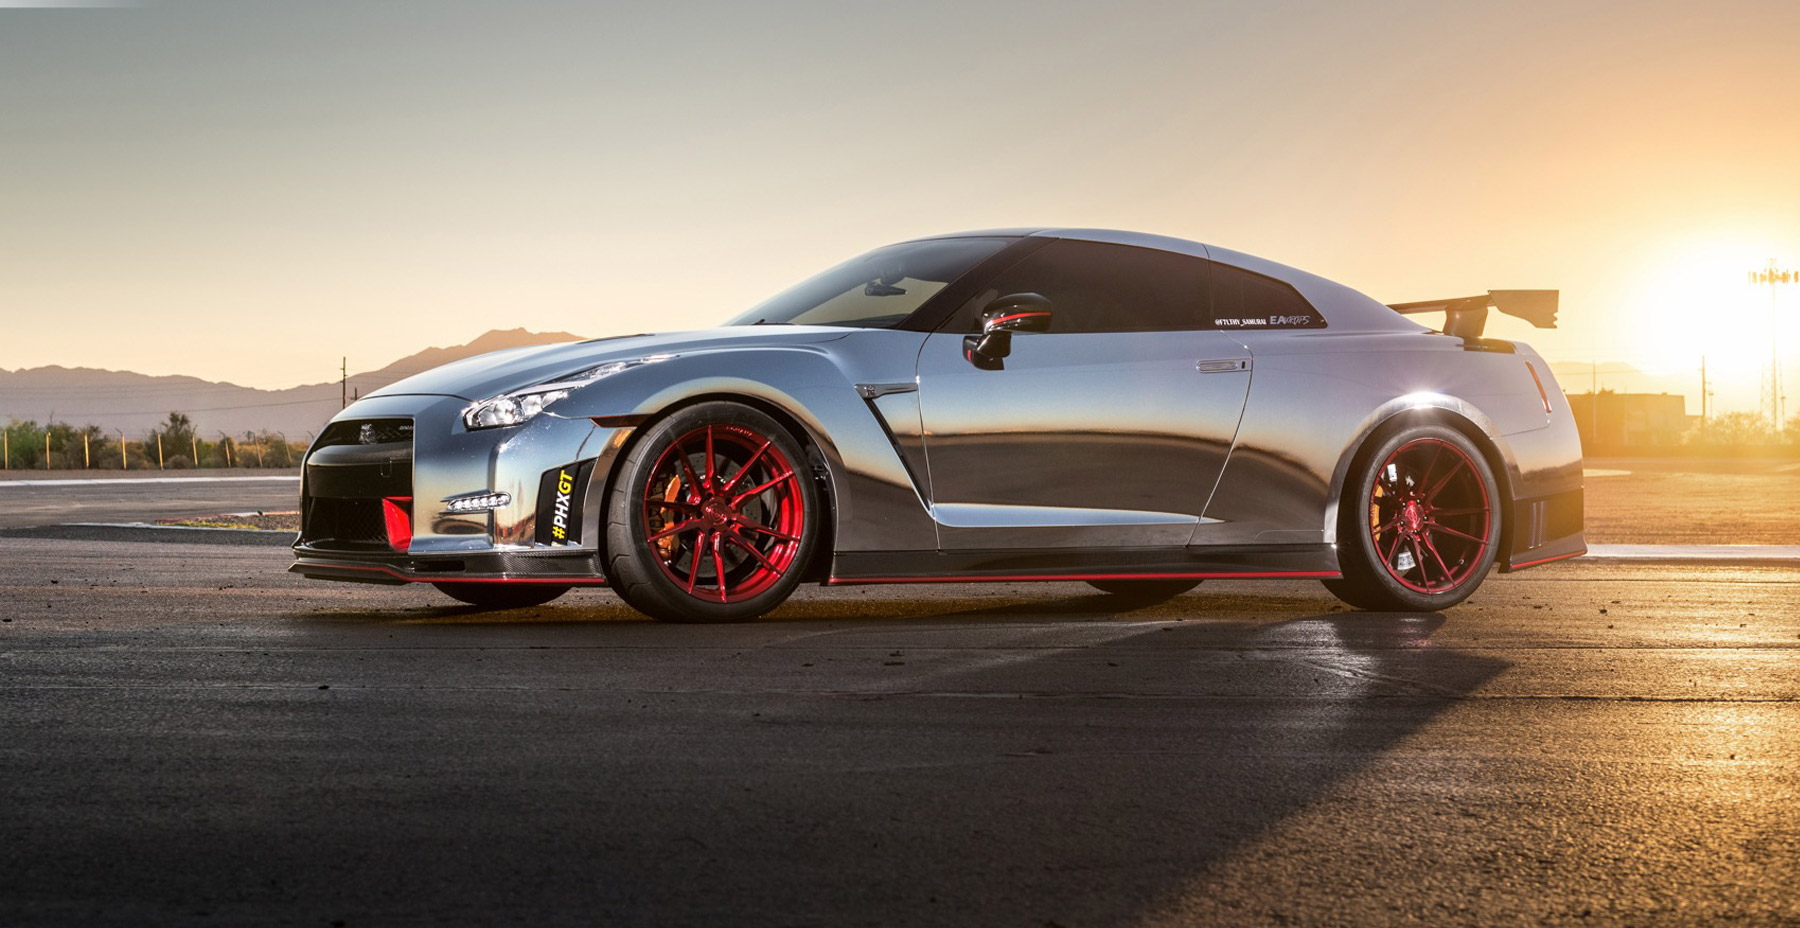 Silver Nissan GTR x Rohana RF2 Wheels (Finished in Gloss Red)